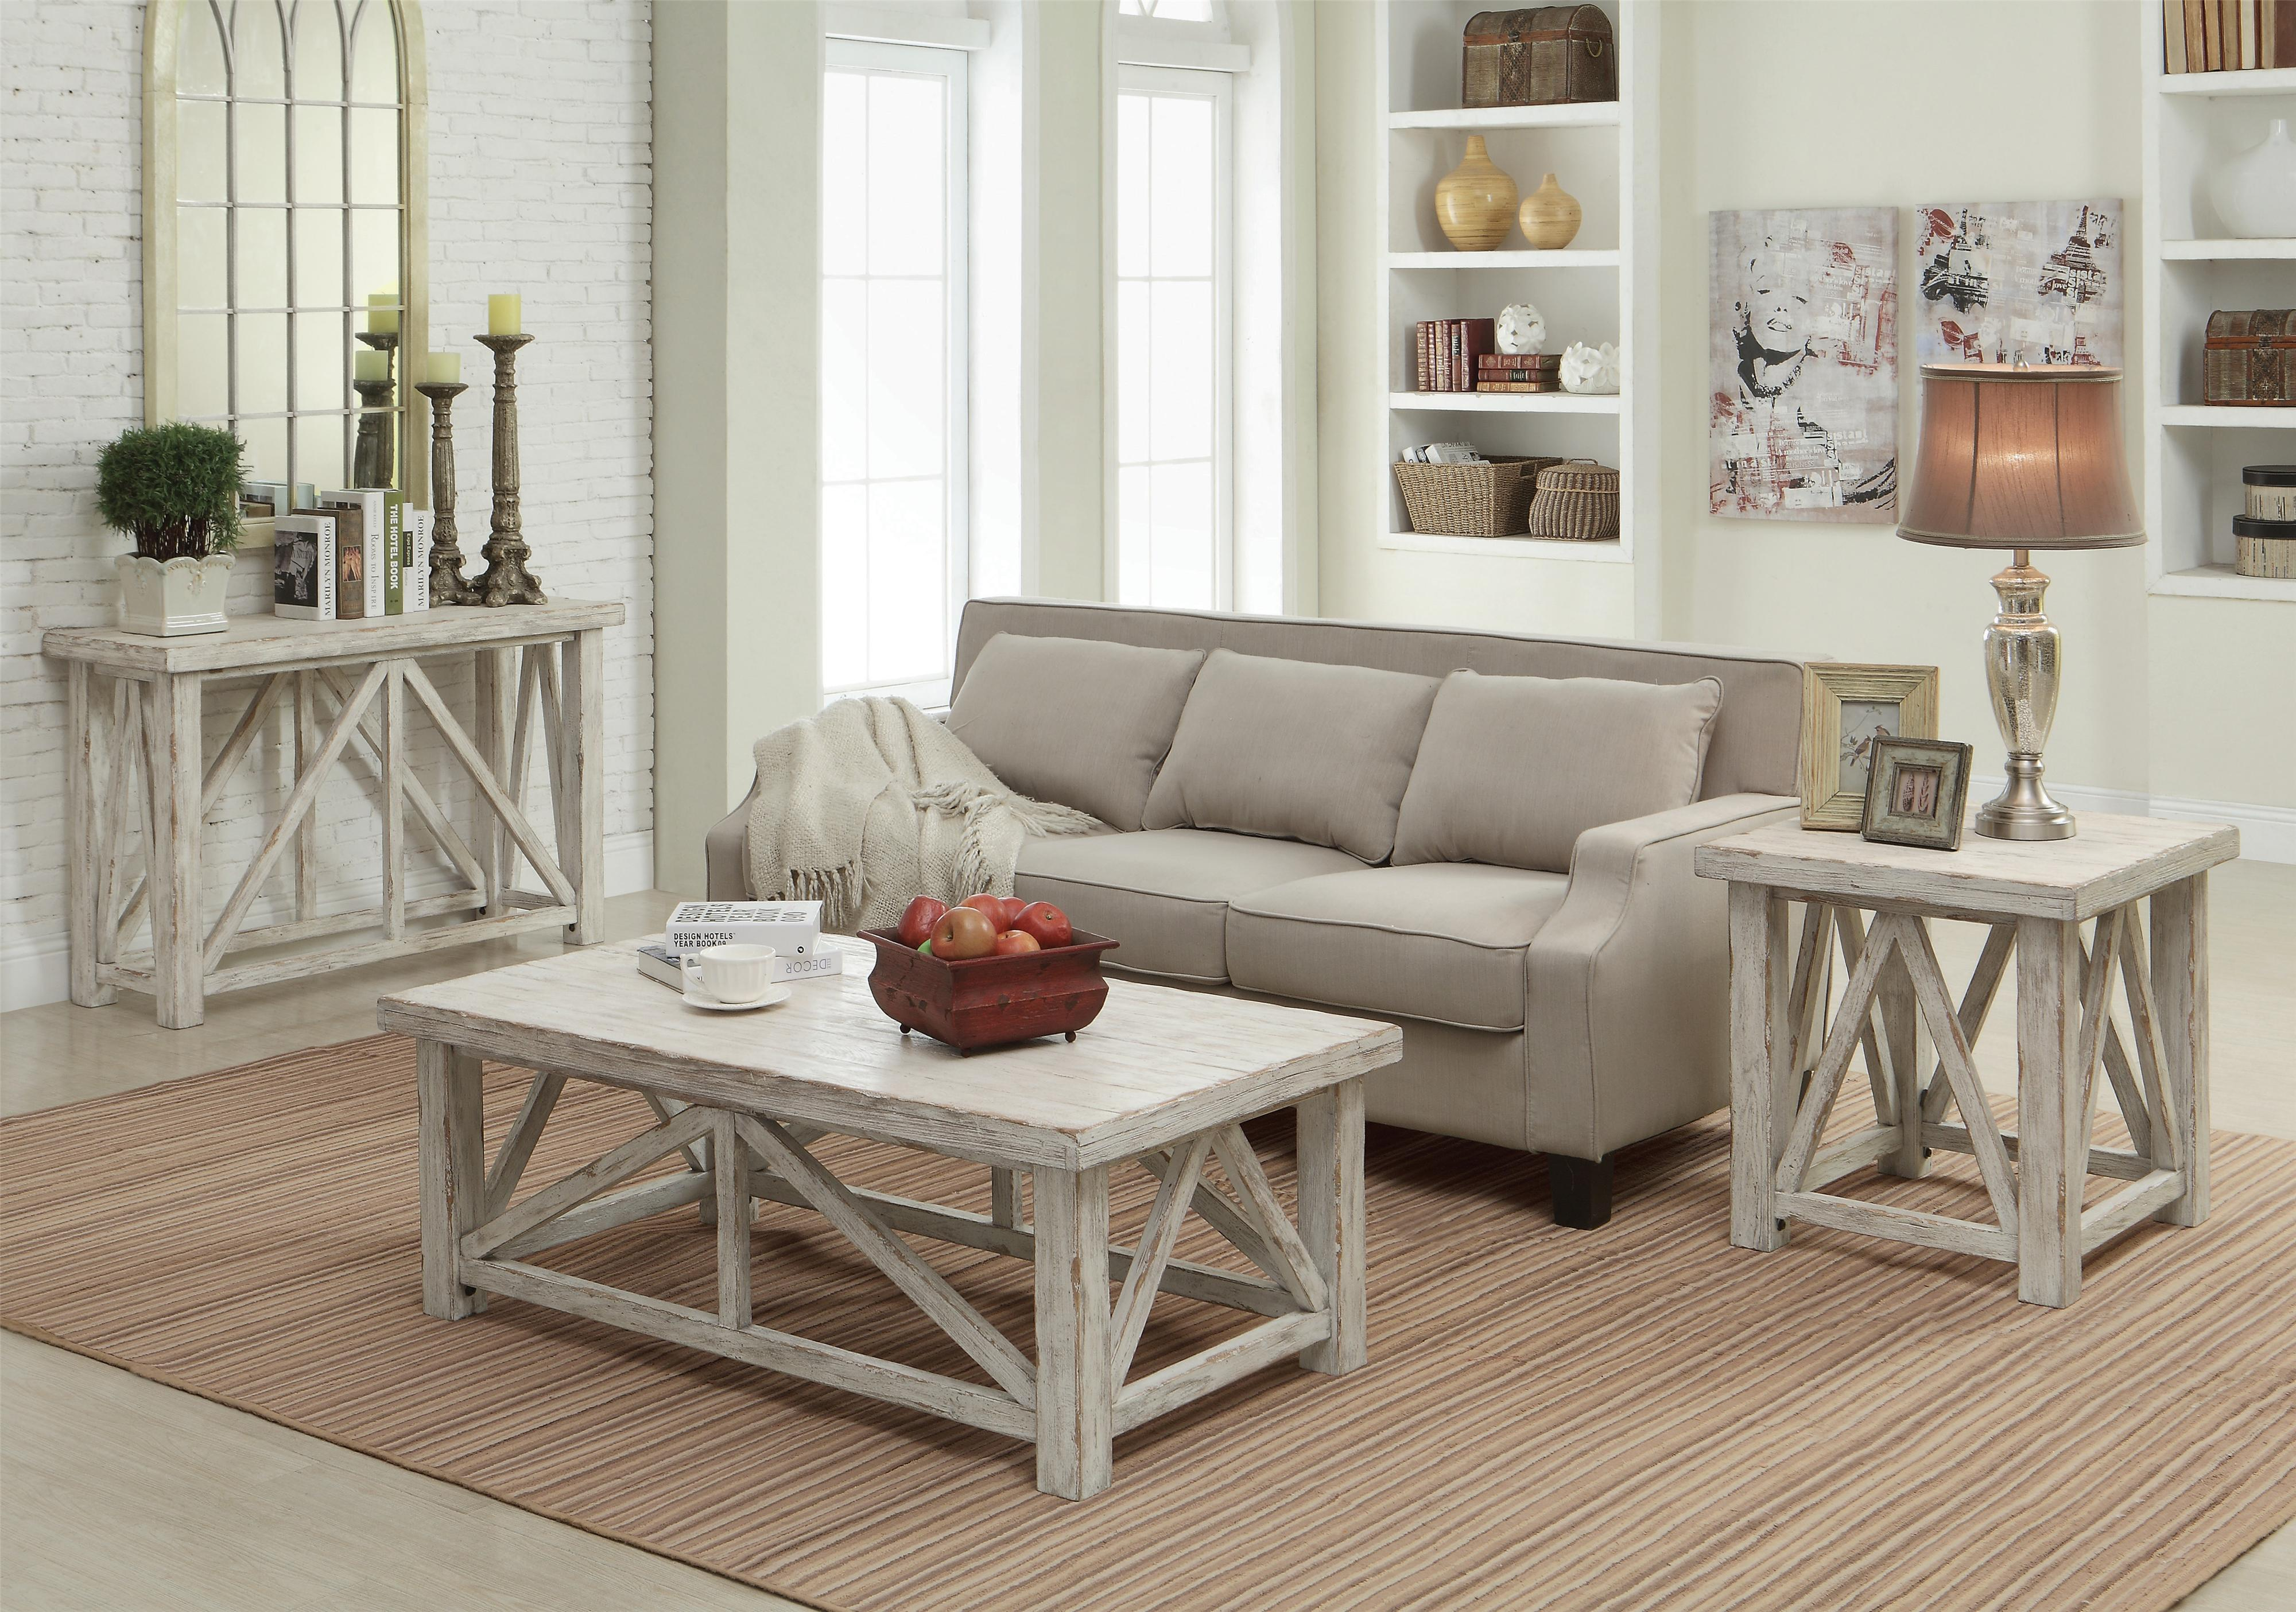 End Table With Light Distressing. By Riverside Furniture